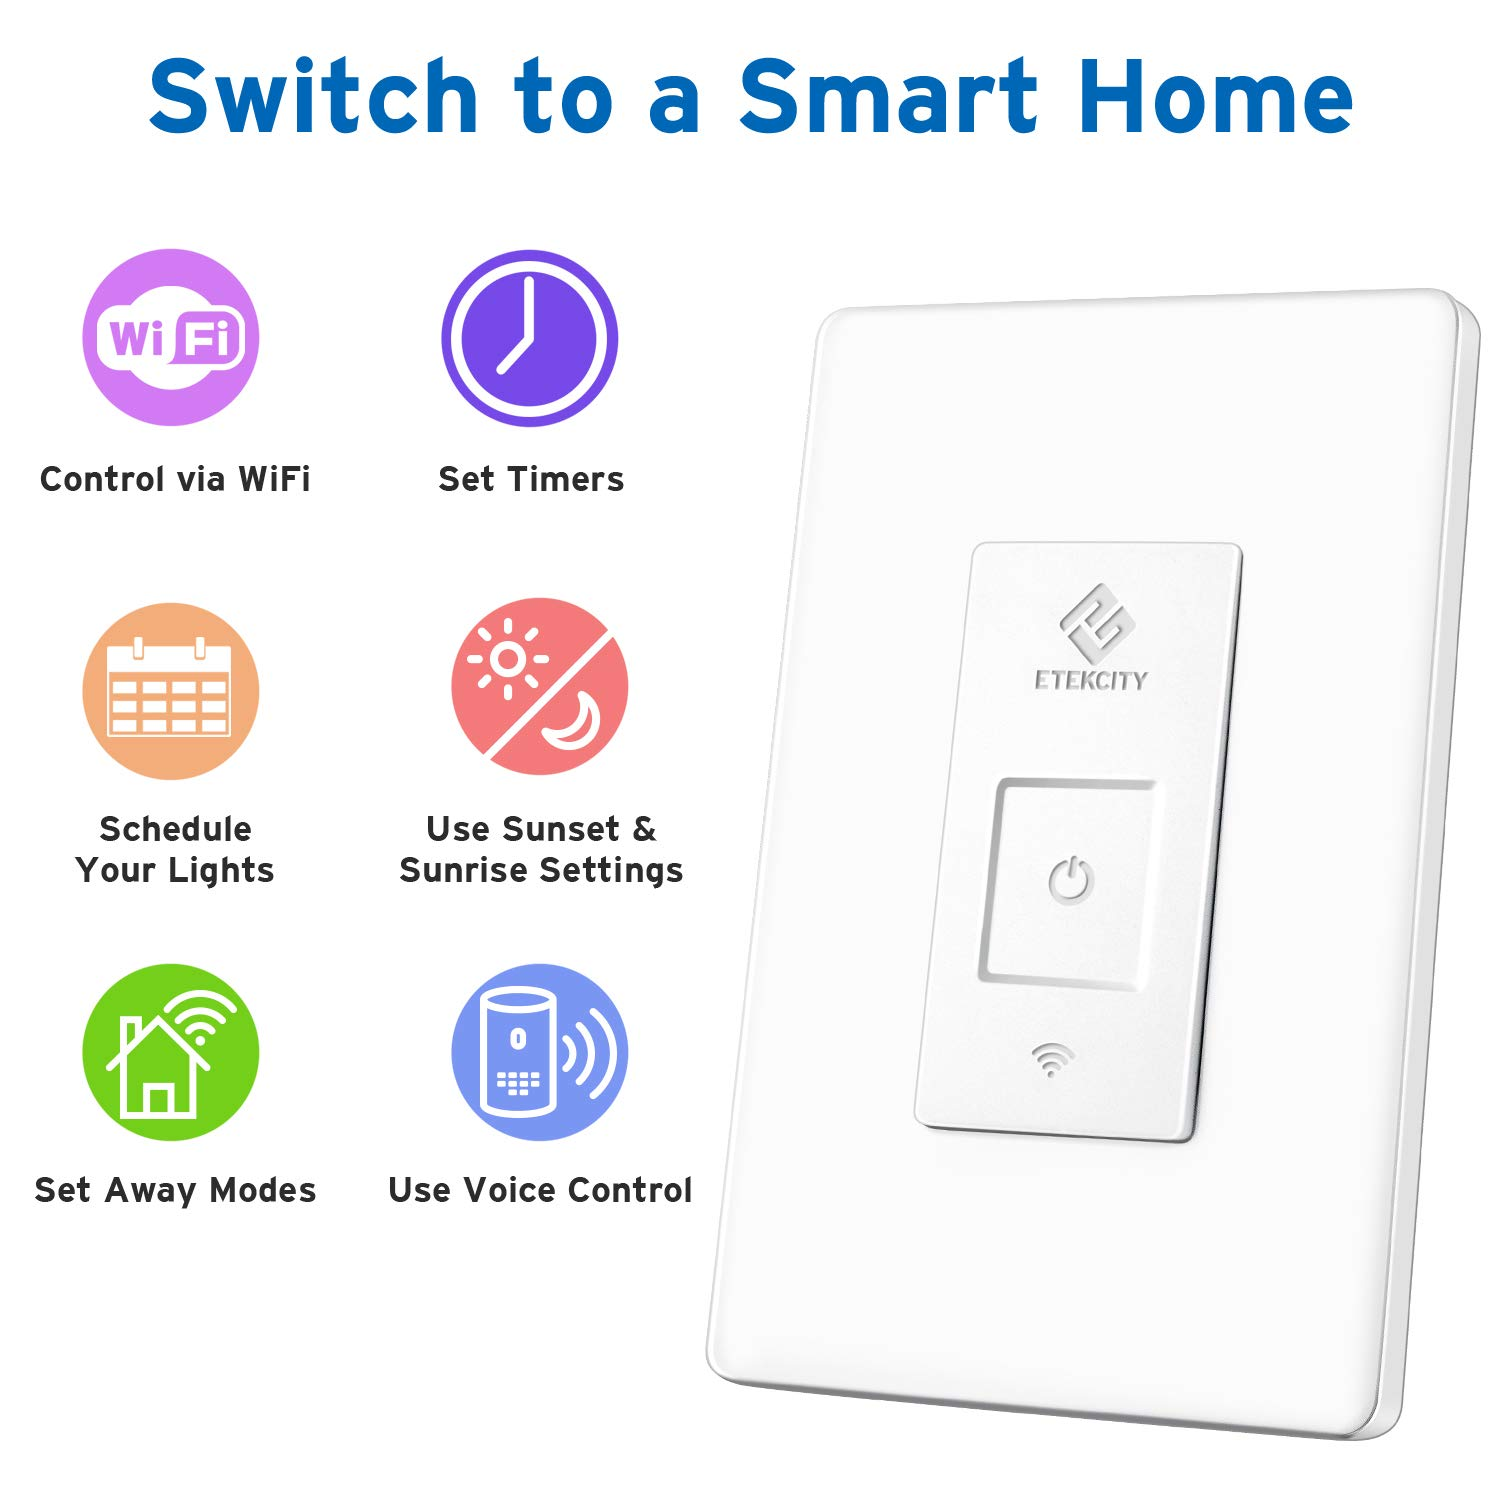 Etekcity Smart WiFi Light Switch, Wireless Remote Control from Anywhere, Schedule Your Home, No Hub Required, Works with Alexa and Google Home, Single Pole Only, White, 15A/1800W, ETL Listed by Etekcity (Image #2)